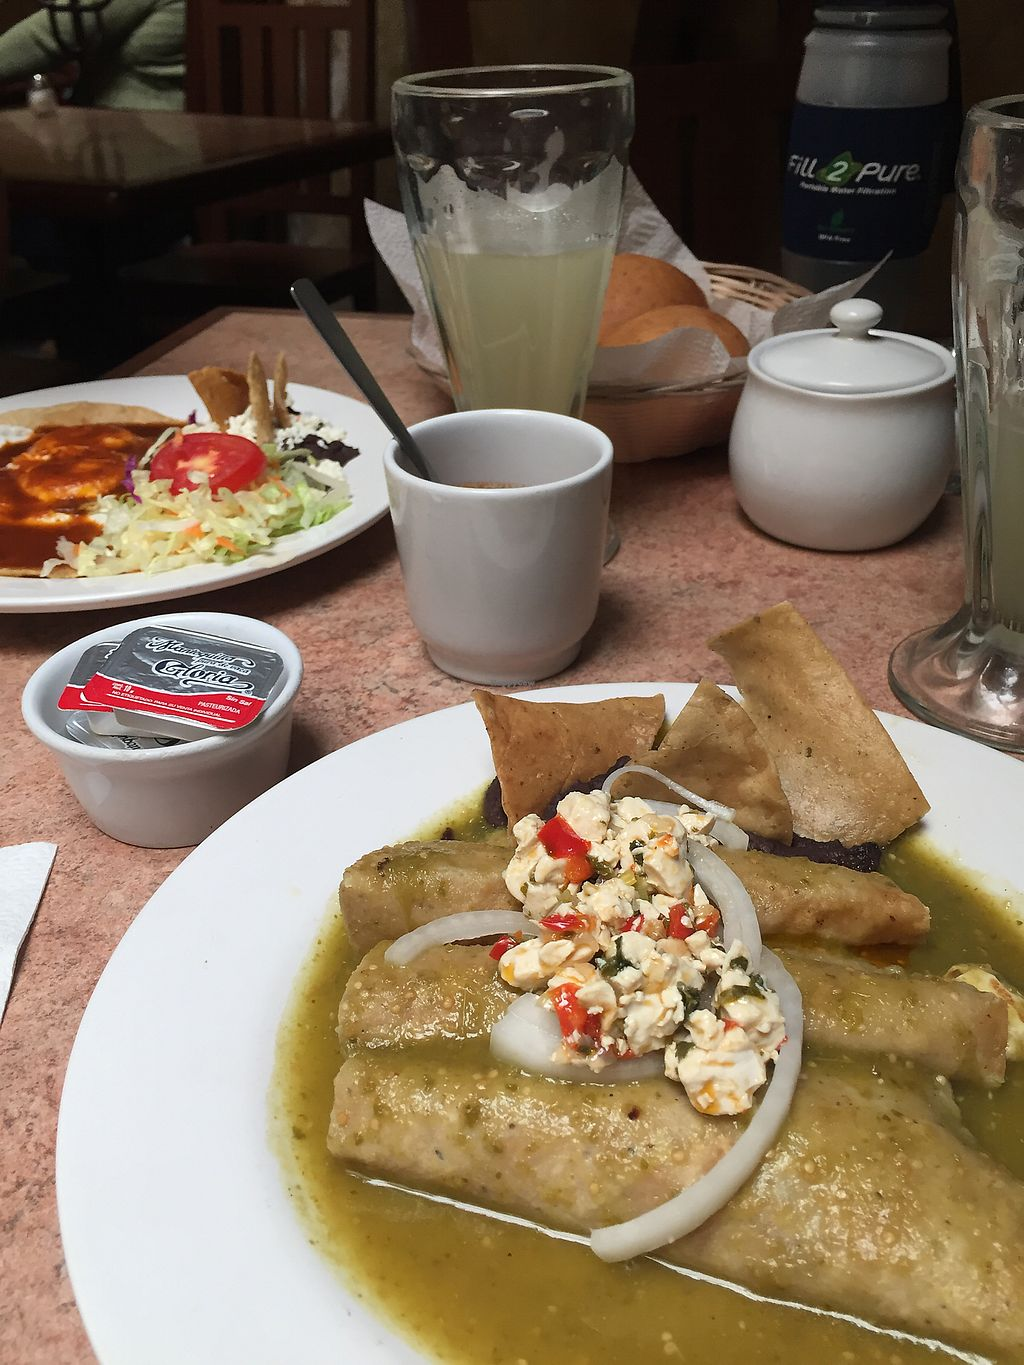 """Photo of La Zanahoria - Centro  by <a href=""""/members/profile/meislnicoline"""">meislnicoline</a> <br/>Vegetarian in the back, vegan option in the front <br/> May 2, 2018  - <a href='/contact/abuse/image/6973/393801'>Report</a>"""